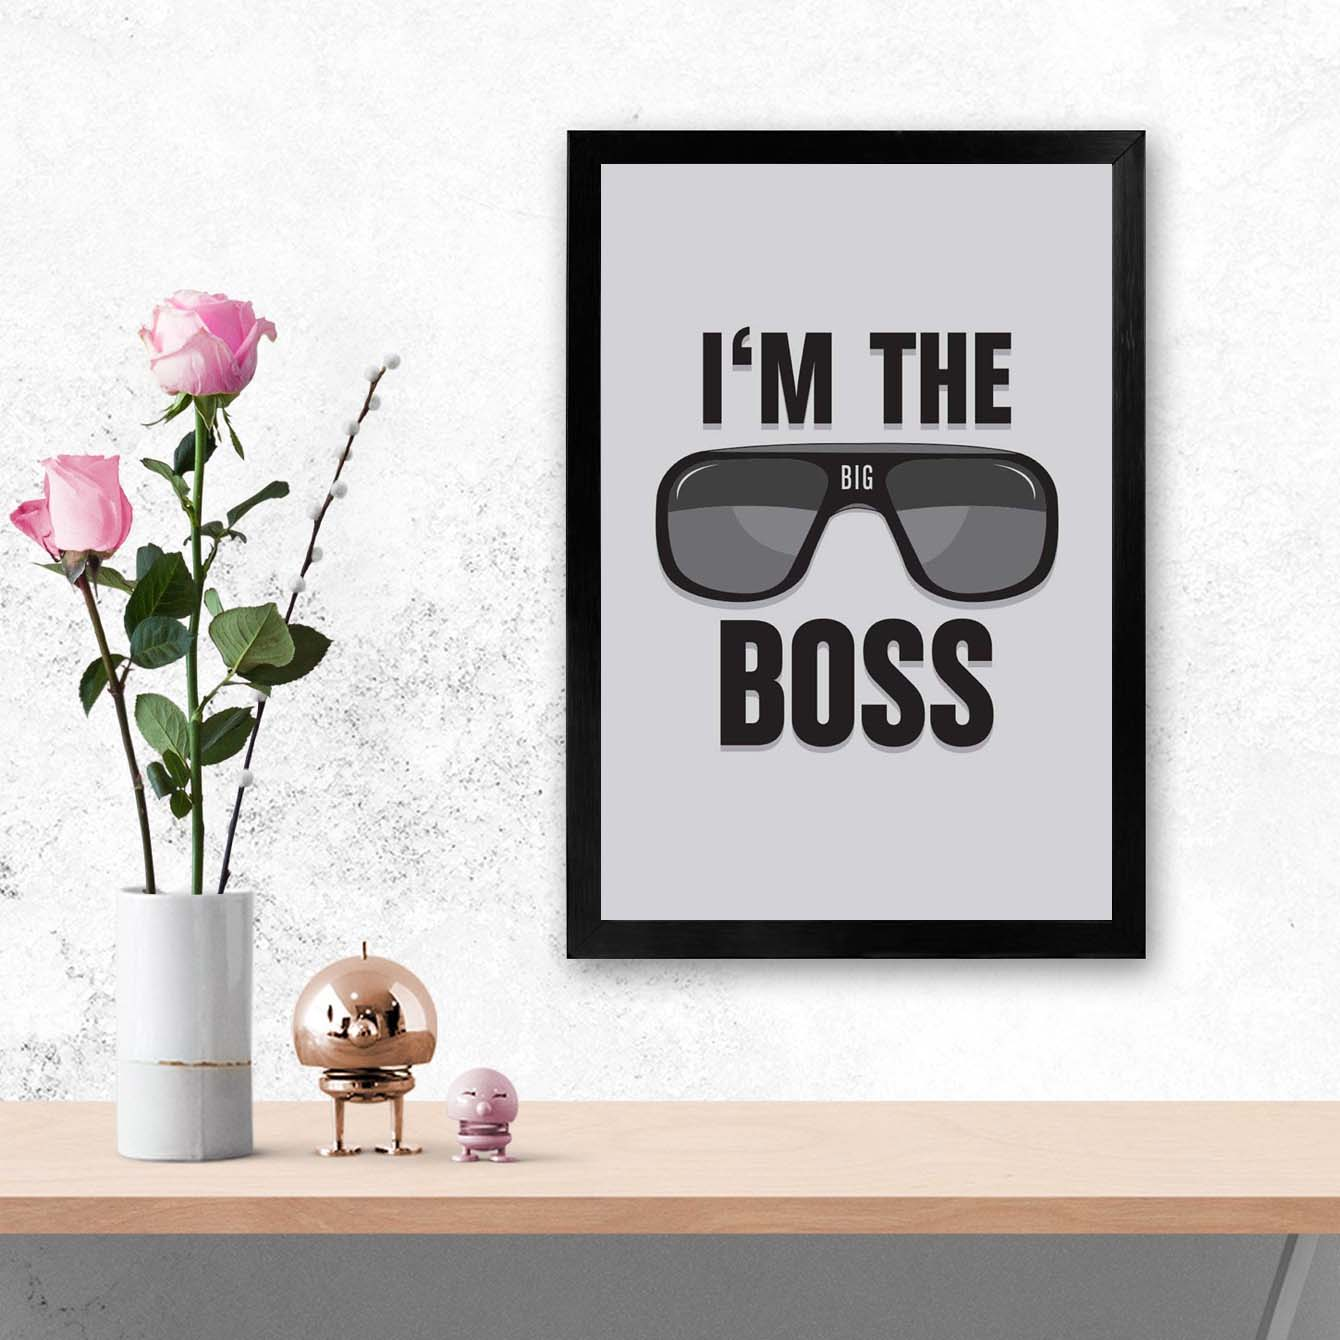 I'm the boss Framed Poster